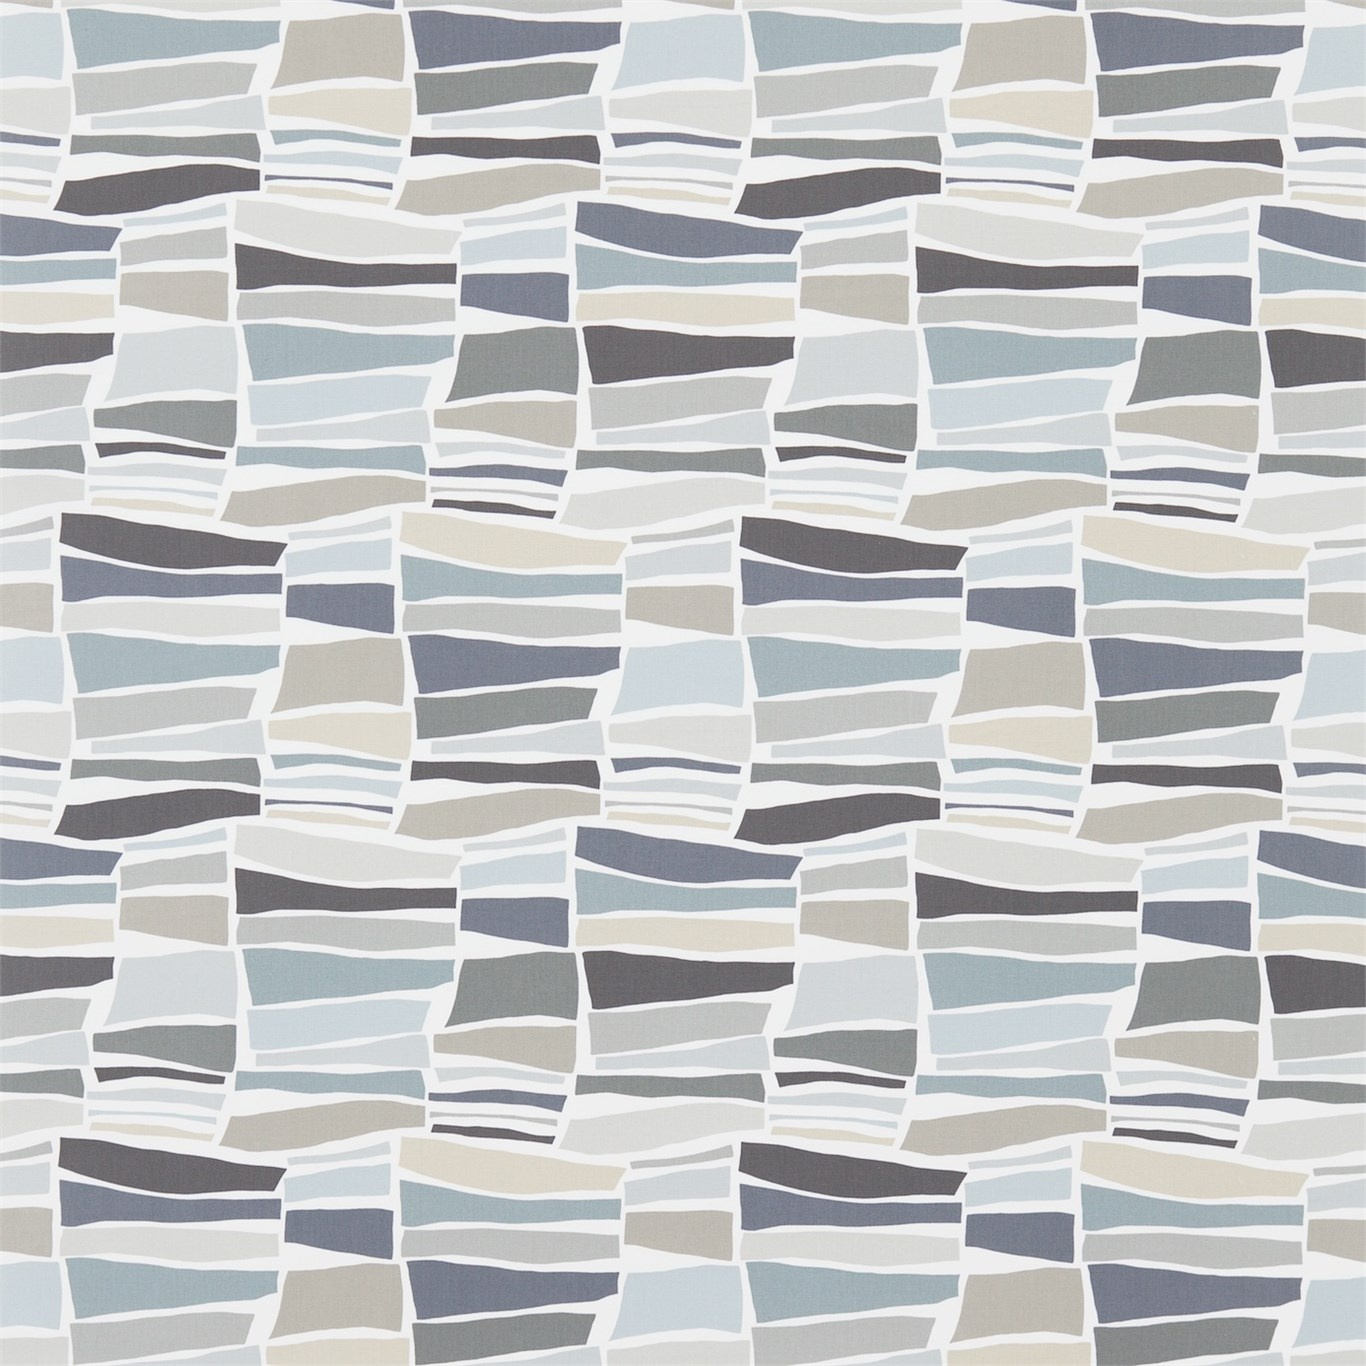 Image of Sanderson Milla Charcoal/Neutral Fabric 224626